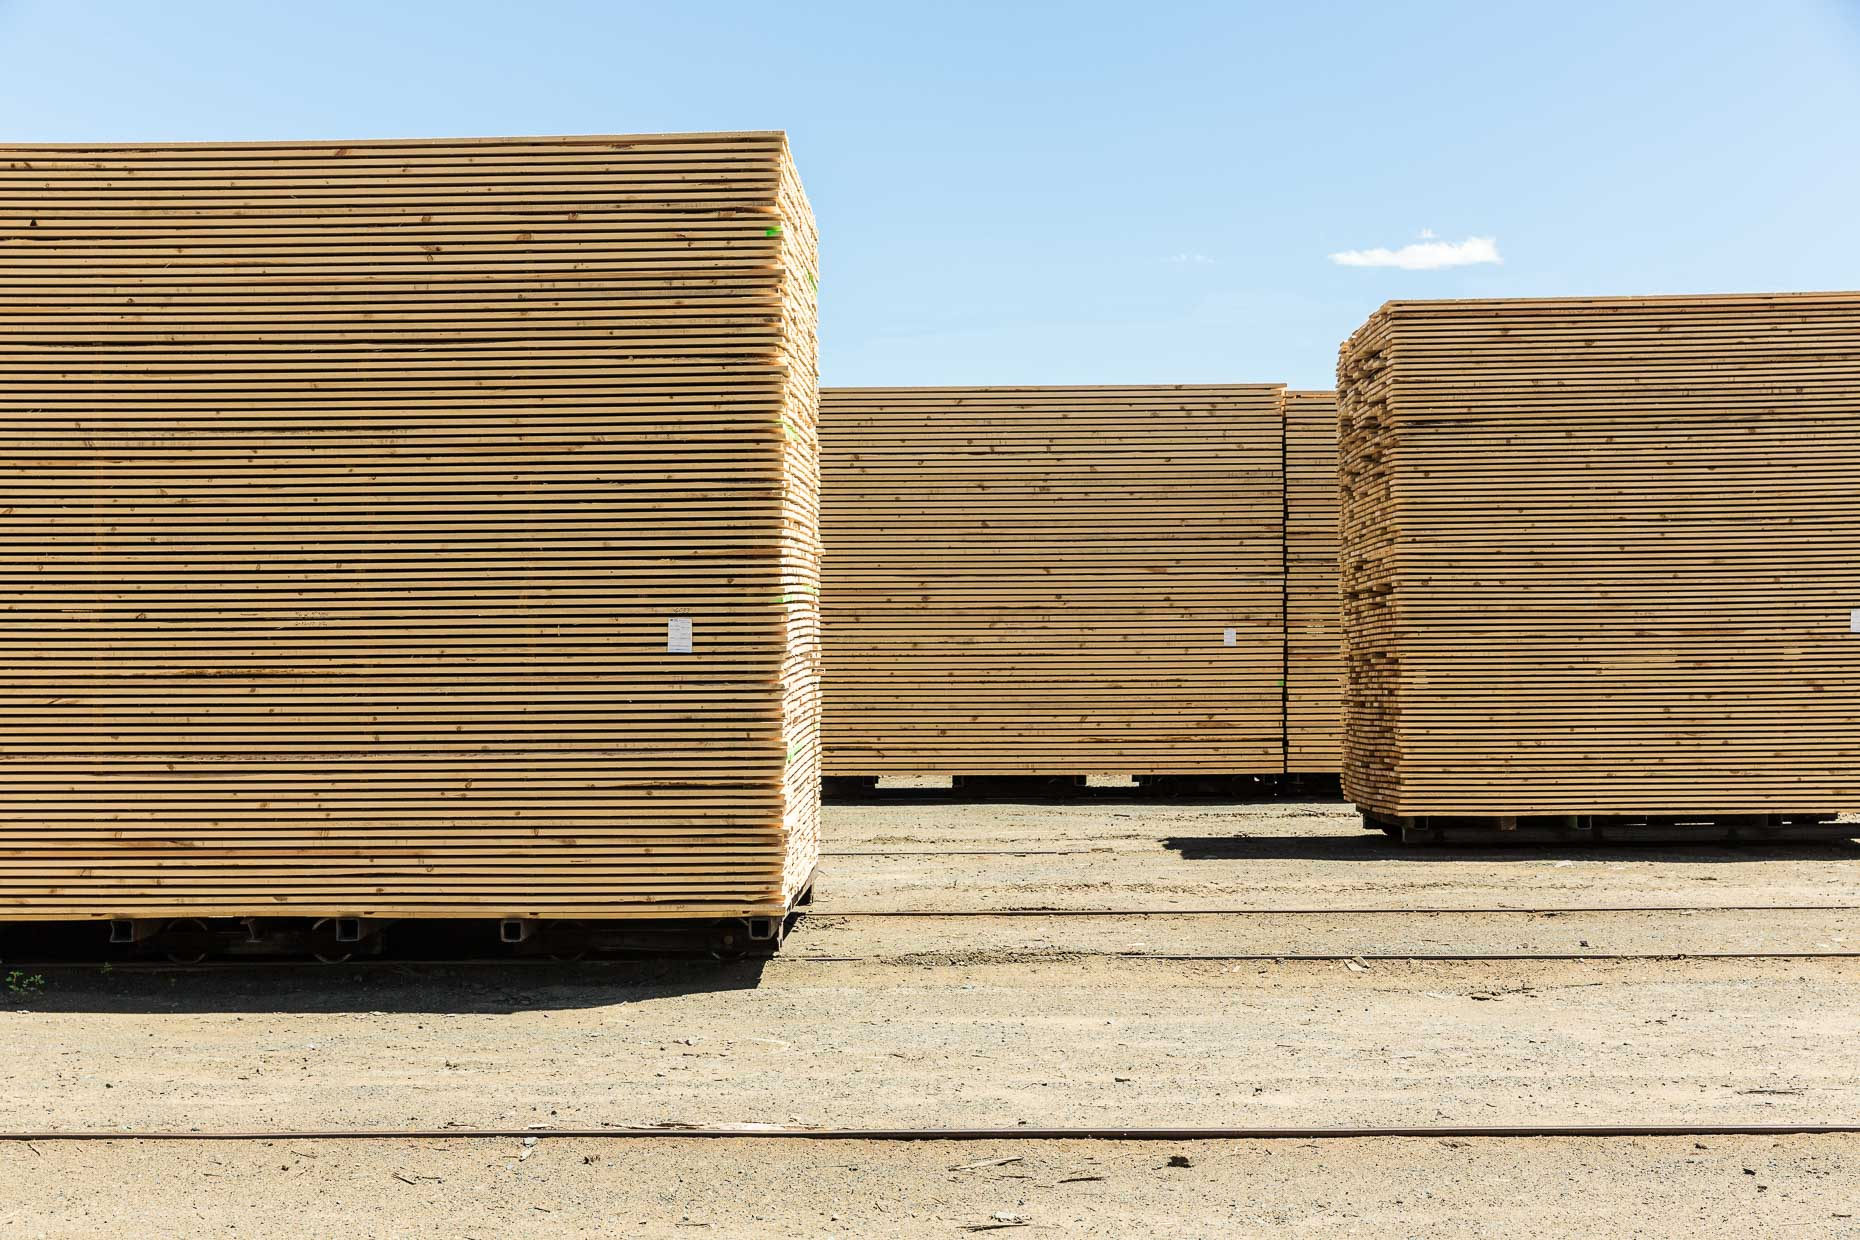 Stacks of finished lumber at lumber mill, Malheur Lumber Company mill in John Day, Oregon by David Zaitz.